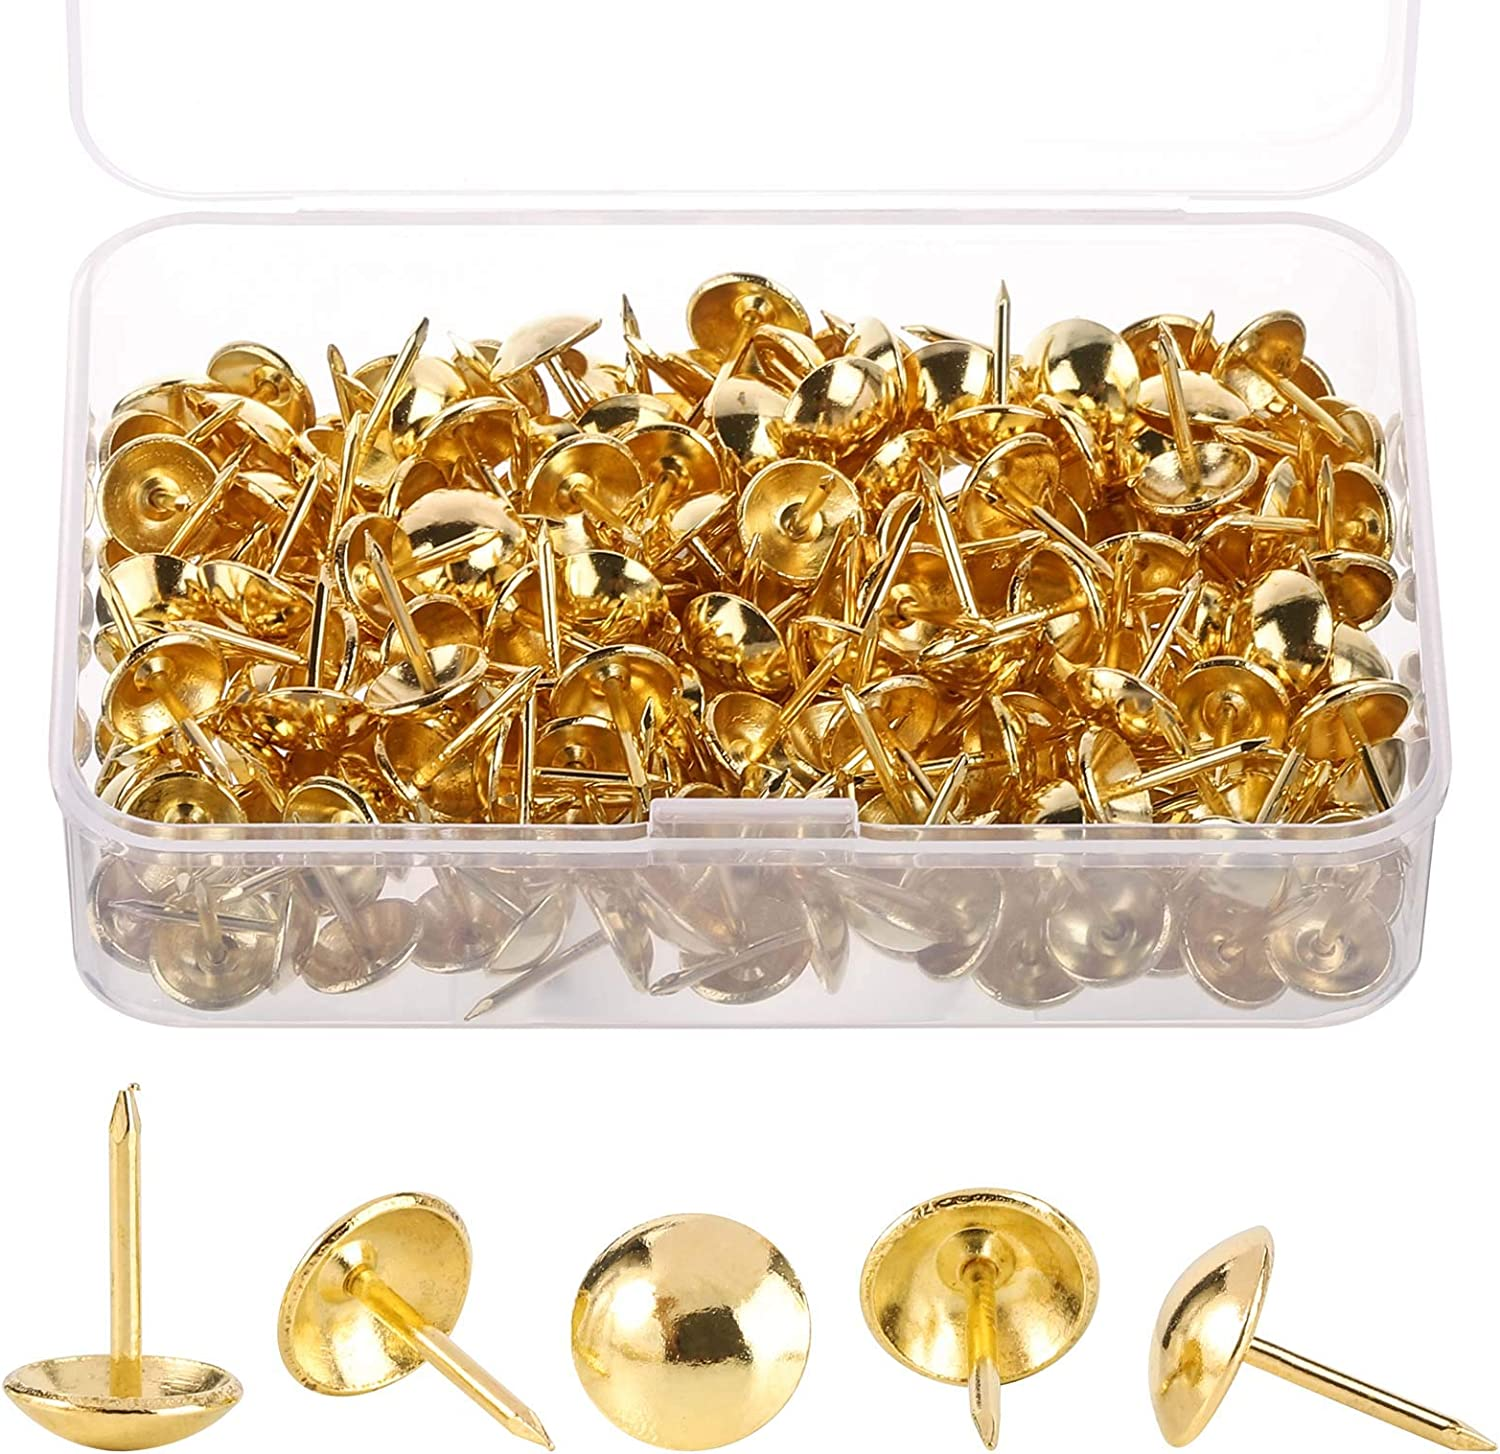 Upholstery Tacks Furniture Nails for Antique Sofa & Headboards Decoration, Brass Thumb Tack Pins - 200 PCS/Box